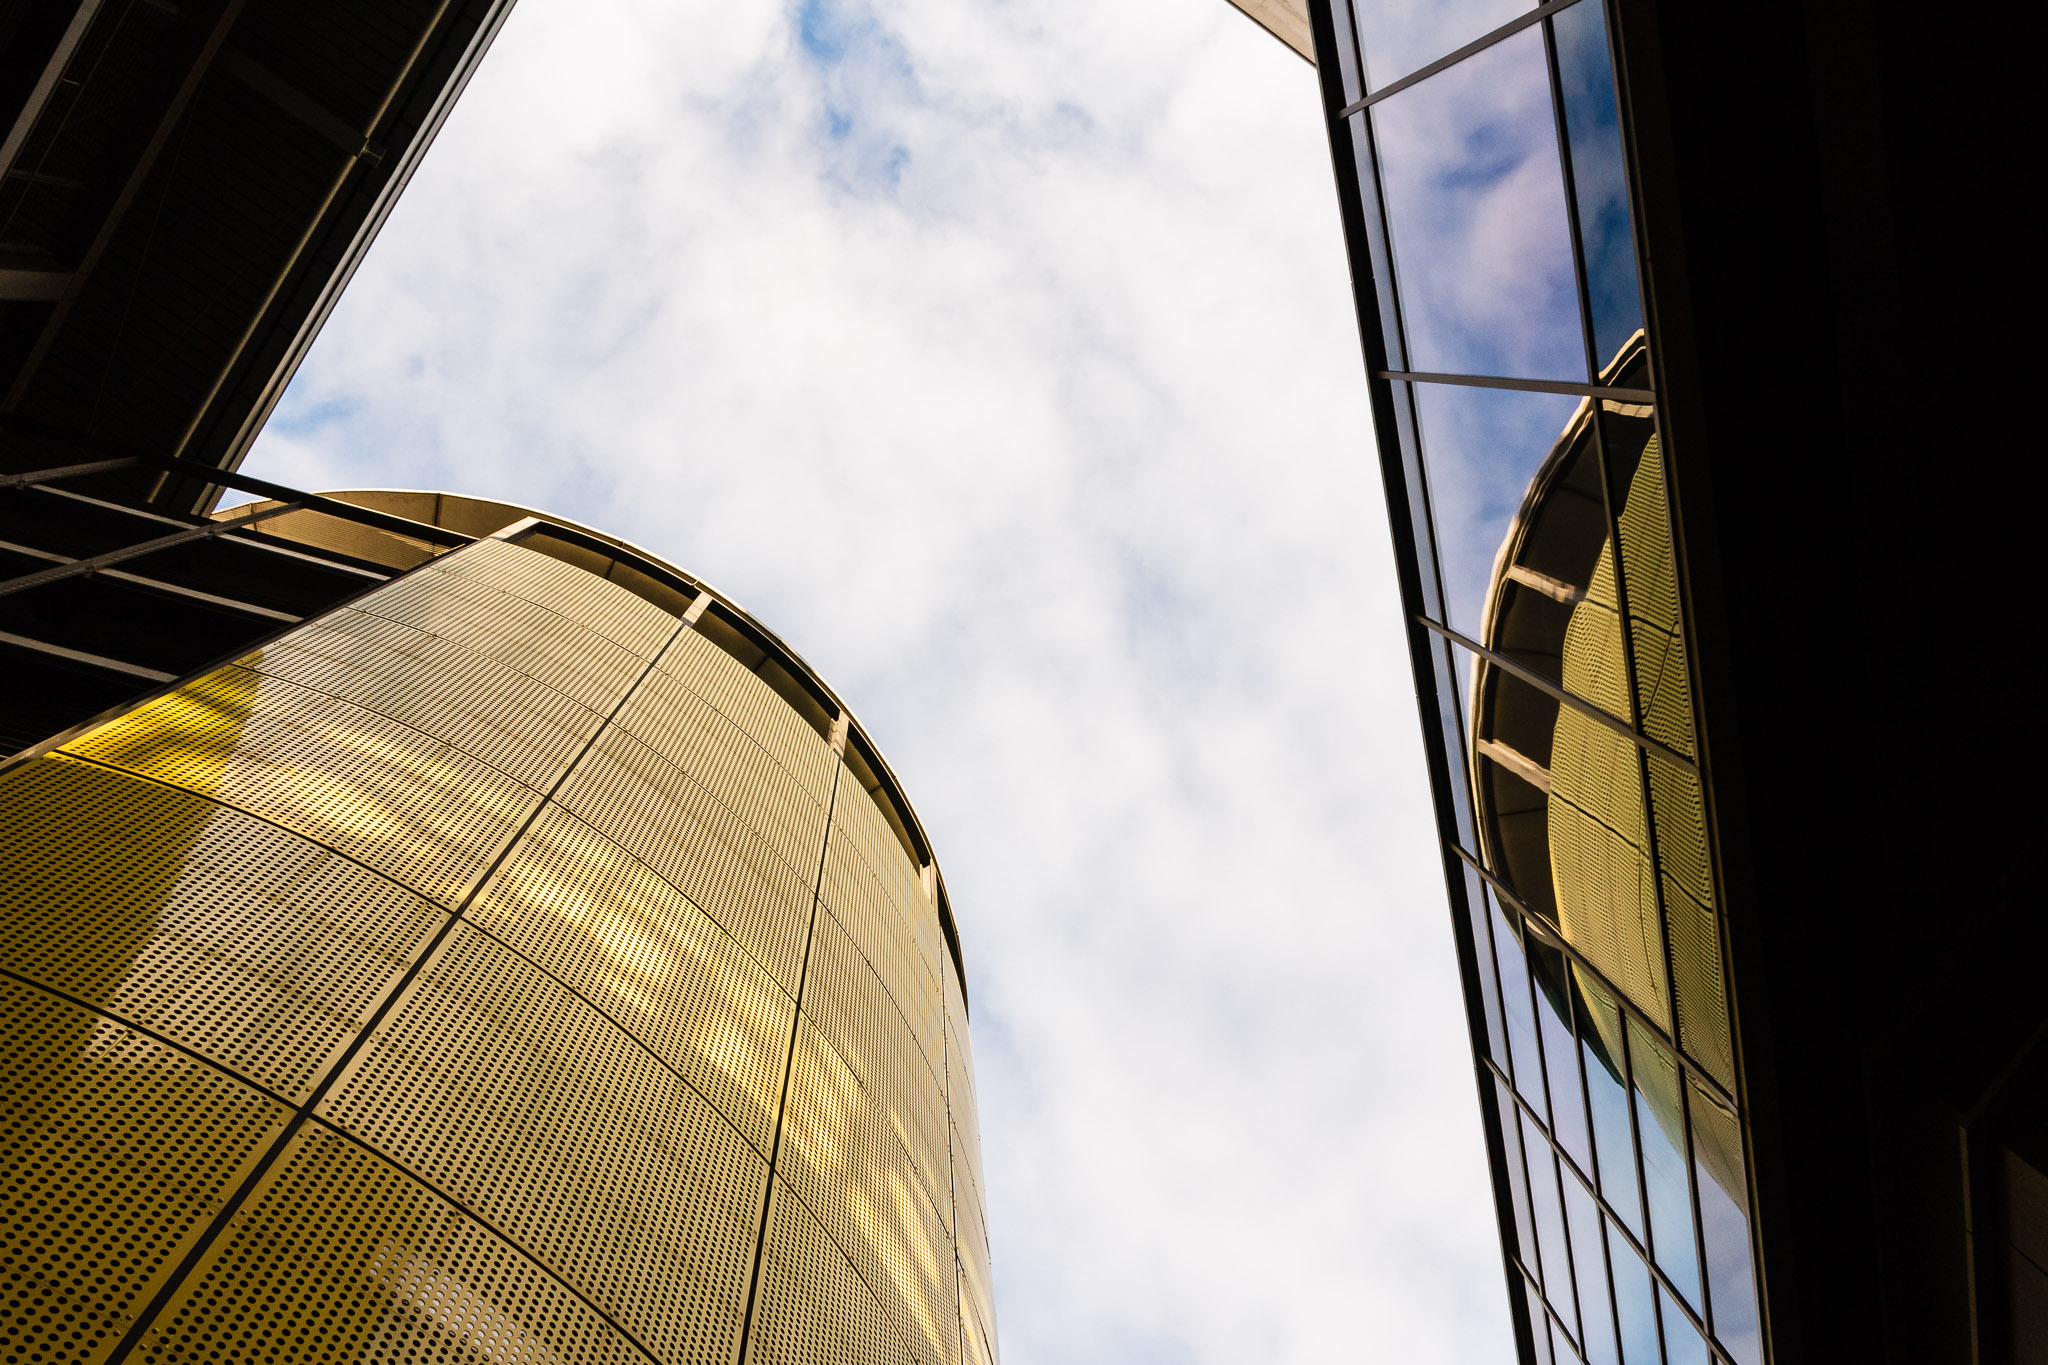 -Tower Mirror- Canon EOS 60D (Sigma 17-70mm F2.8-4 DC Macro C, 17 mm, f/8.0, 1/250s, ISO400)